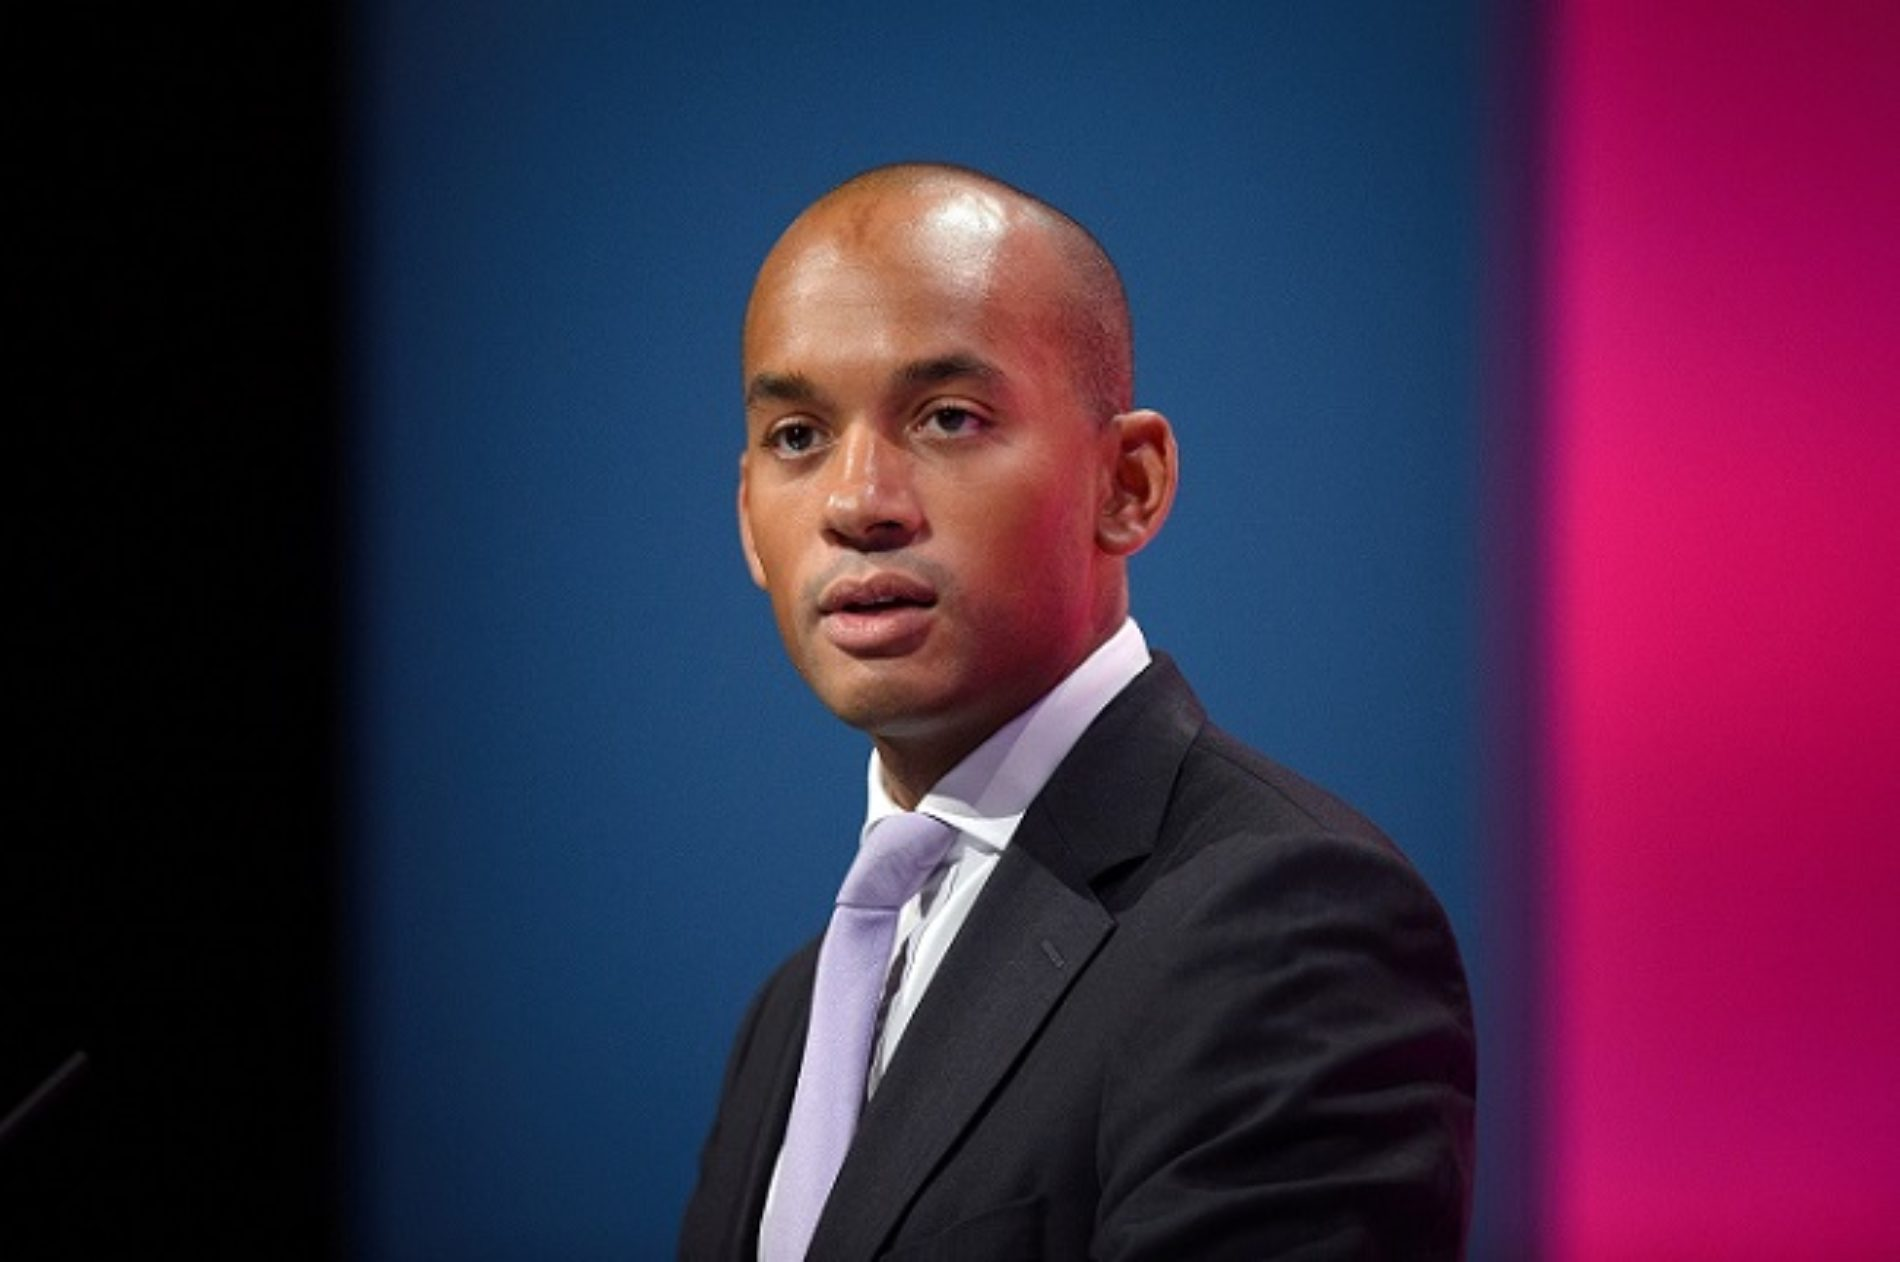 'People would be more outraged if Tyson Fury's comments were racist.' Chuka Umunna